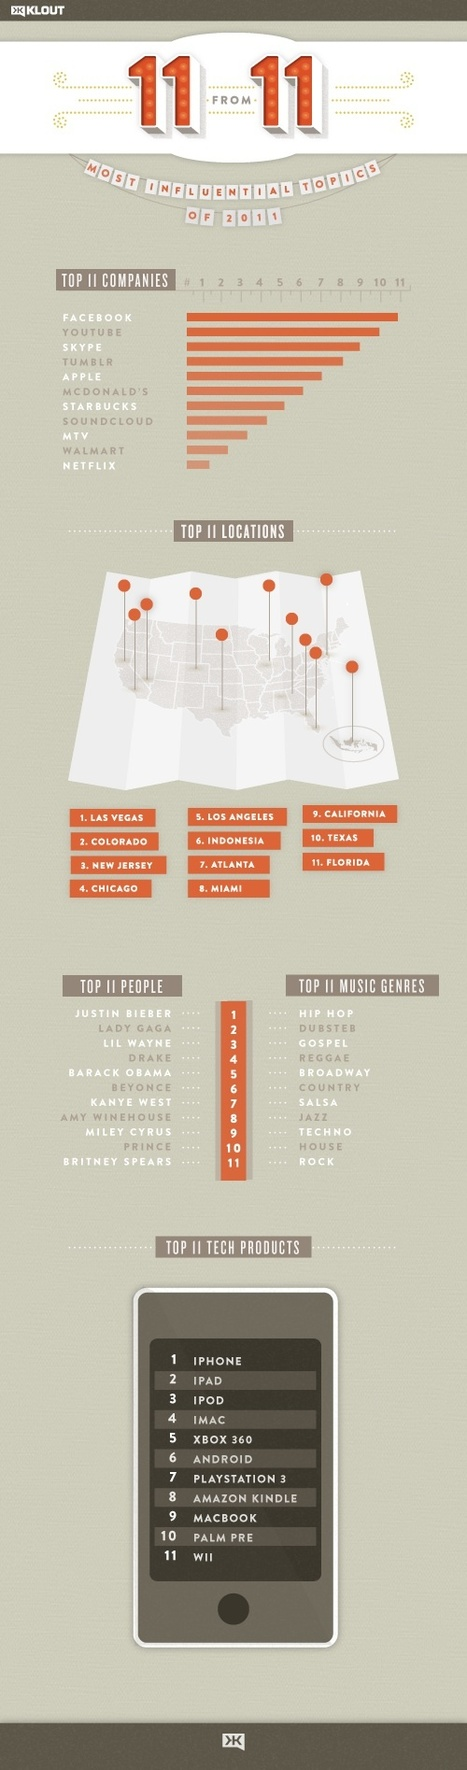 Facebook and iPhone Lead Way on Klout's Top Topics of 2011 Lists [INFOGRAPHIC] | Social Media Buzz | Scoop.it